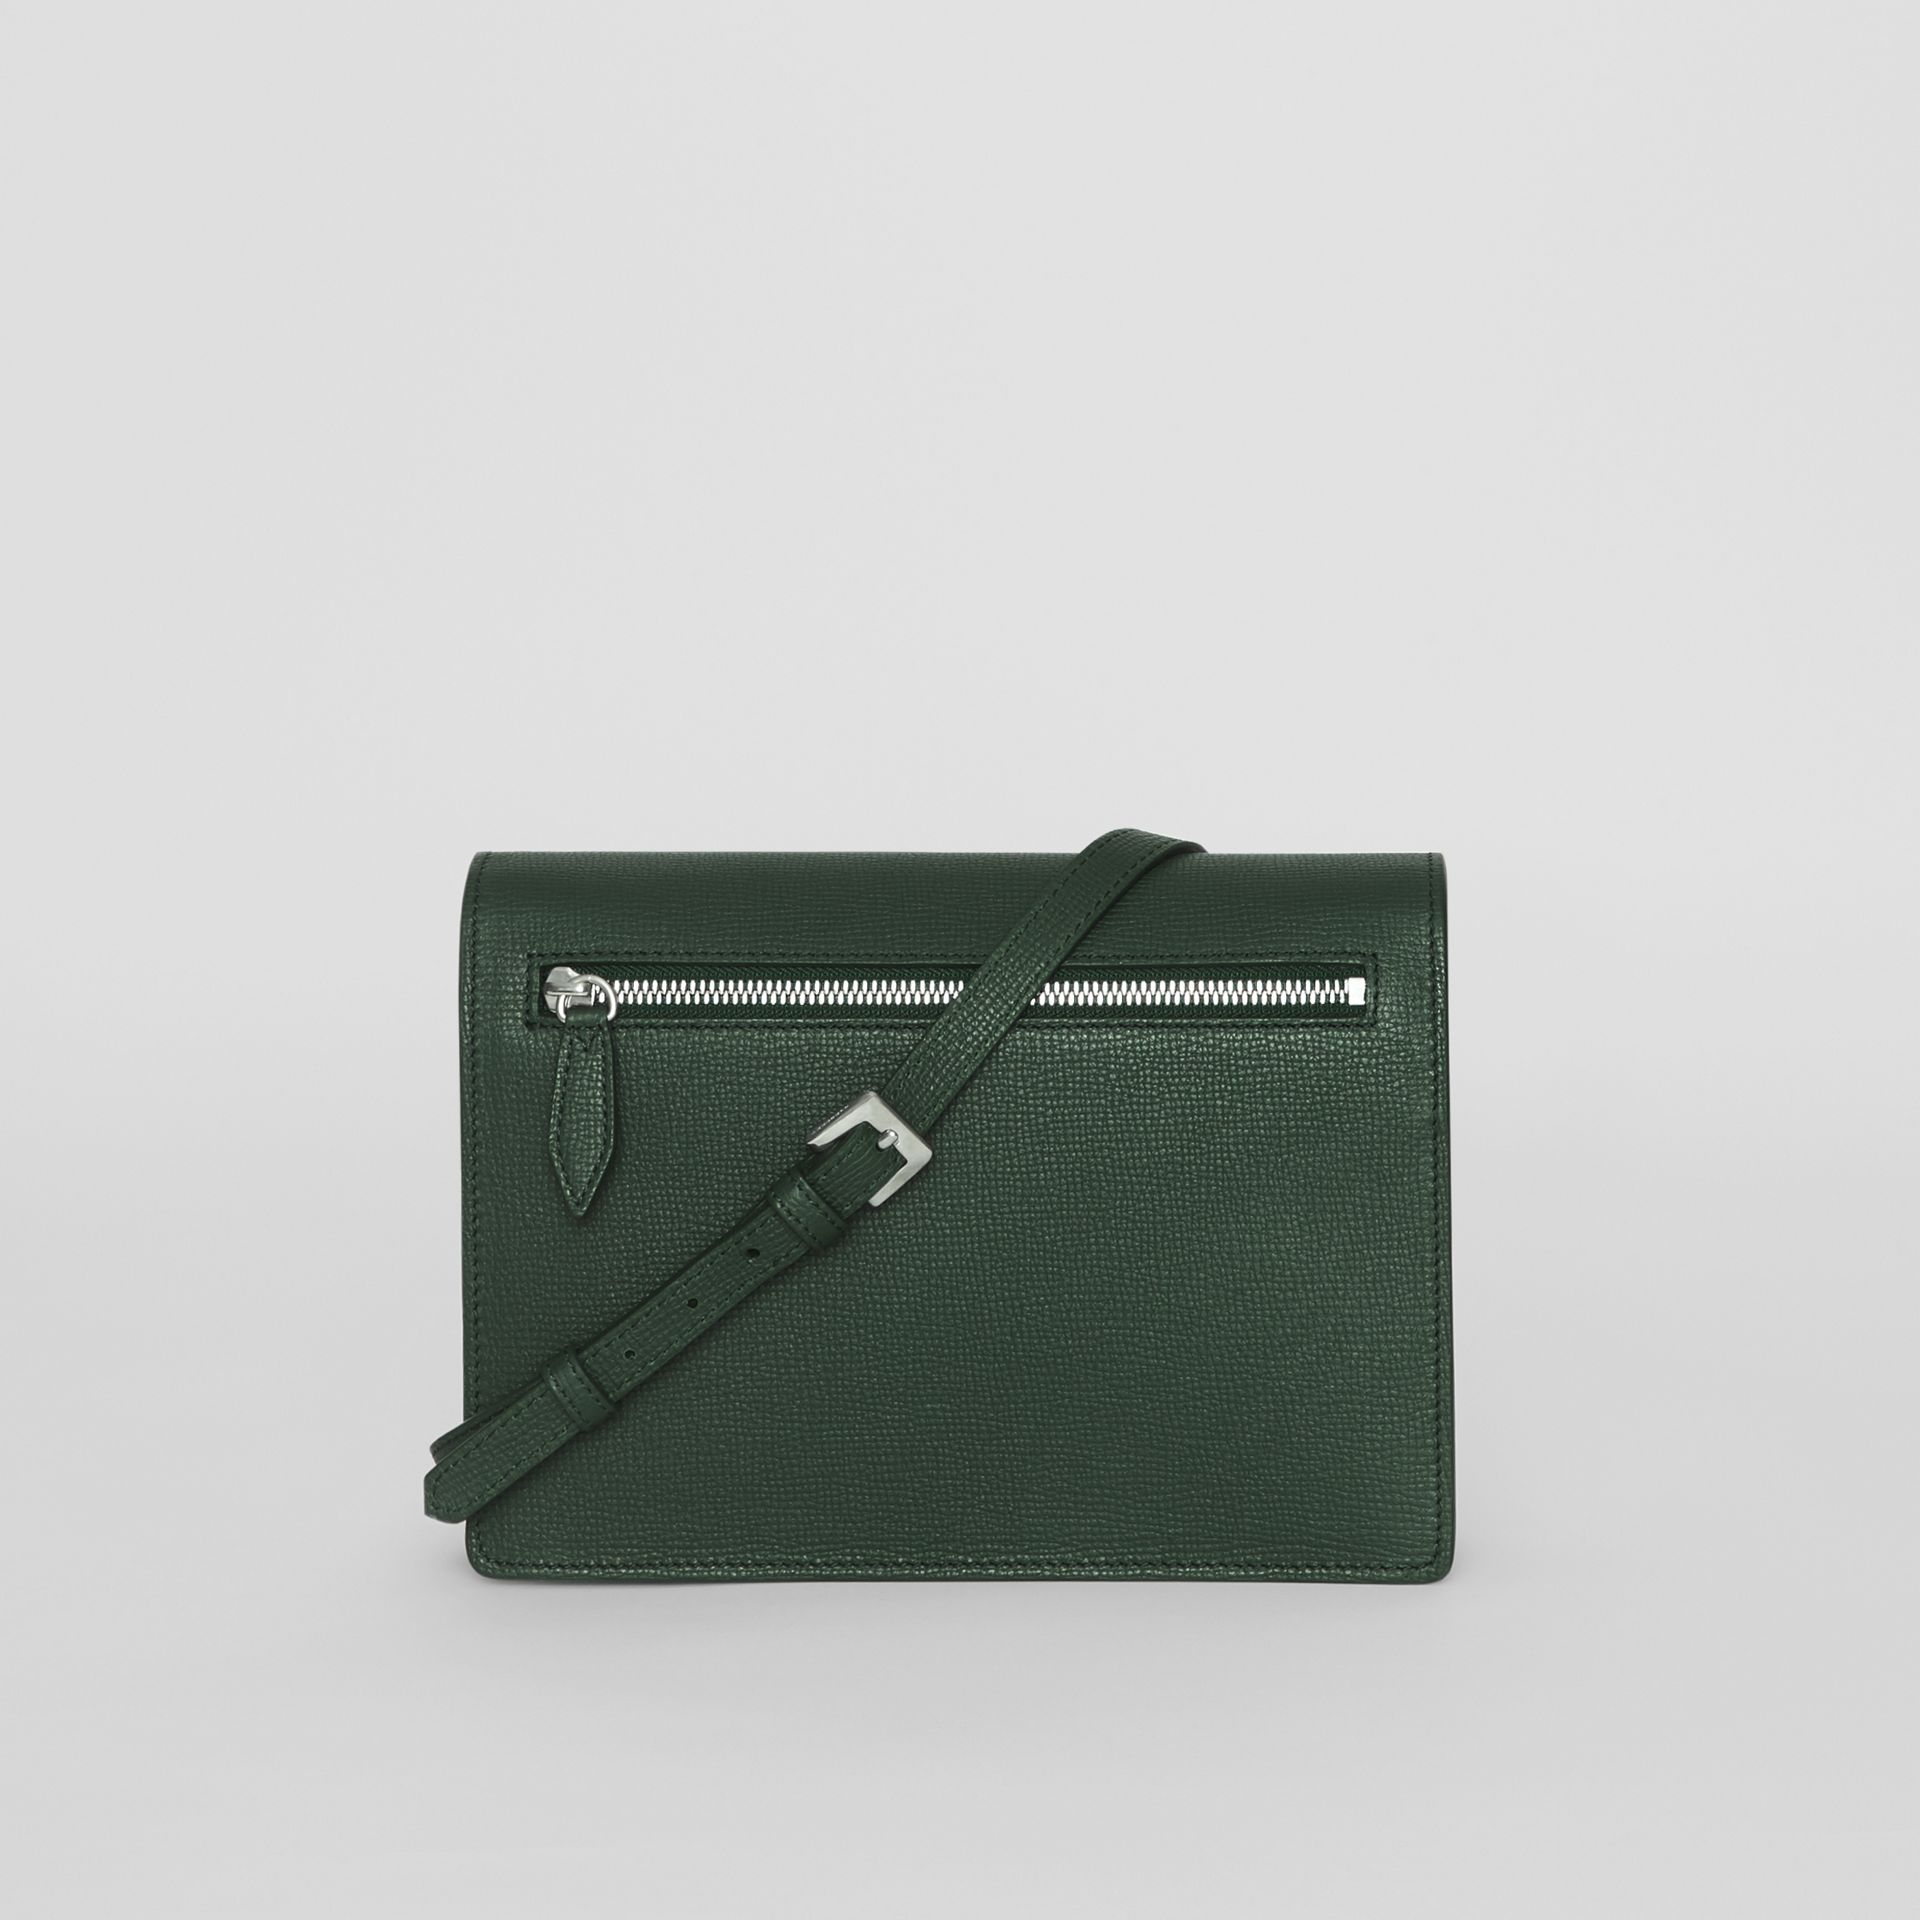 Small Vintage Check and Leather Crossbody Bag in Green - Women | Burberry - gallery image 7